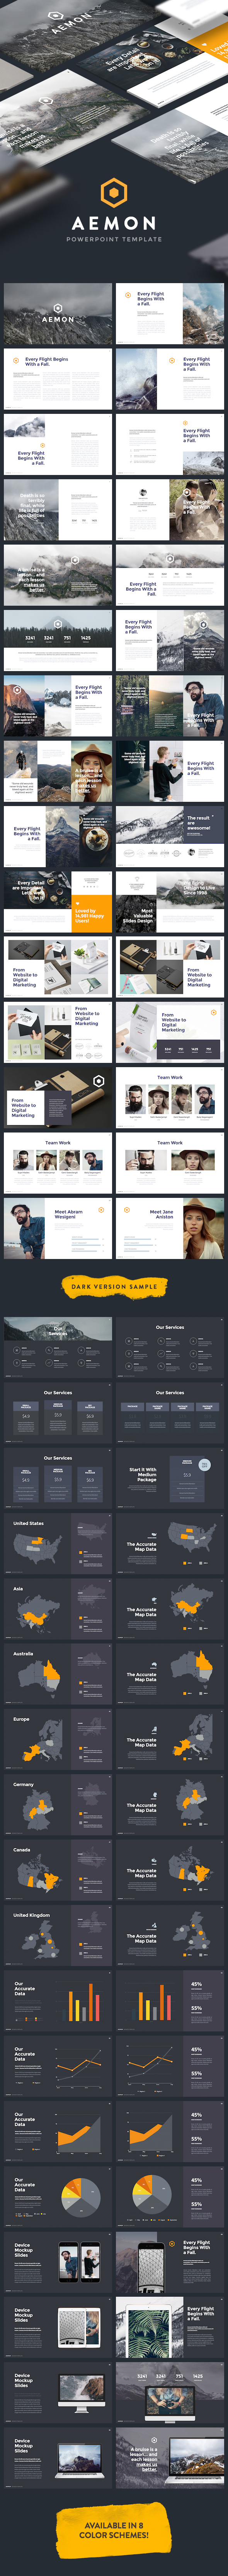 Minimal & Creative Powerpoint Template (Aemon) - Creative PowerPoint Templates